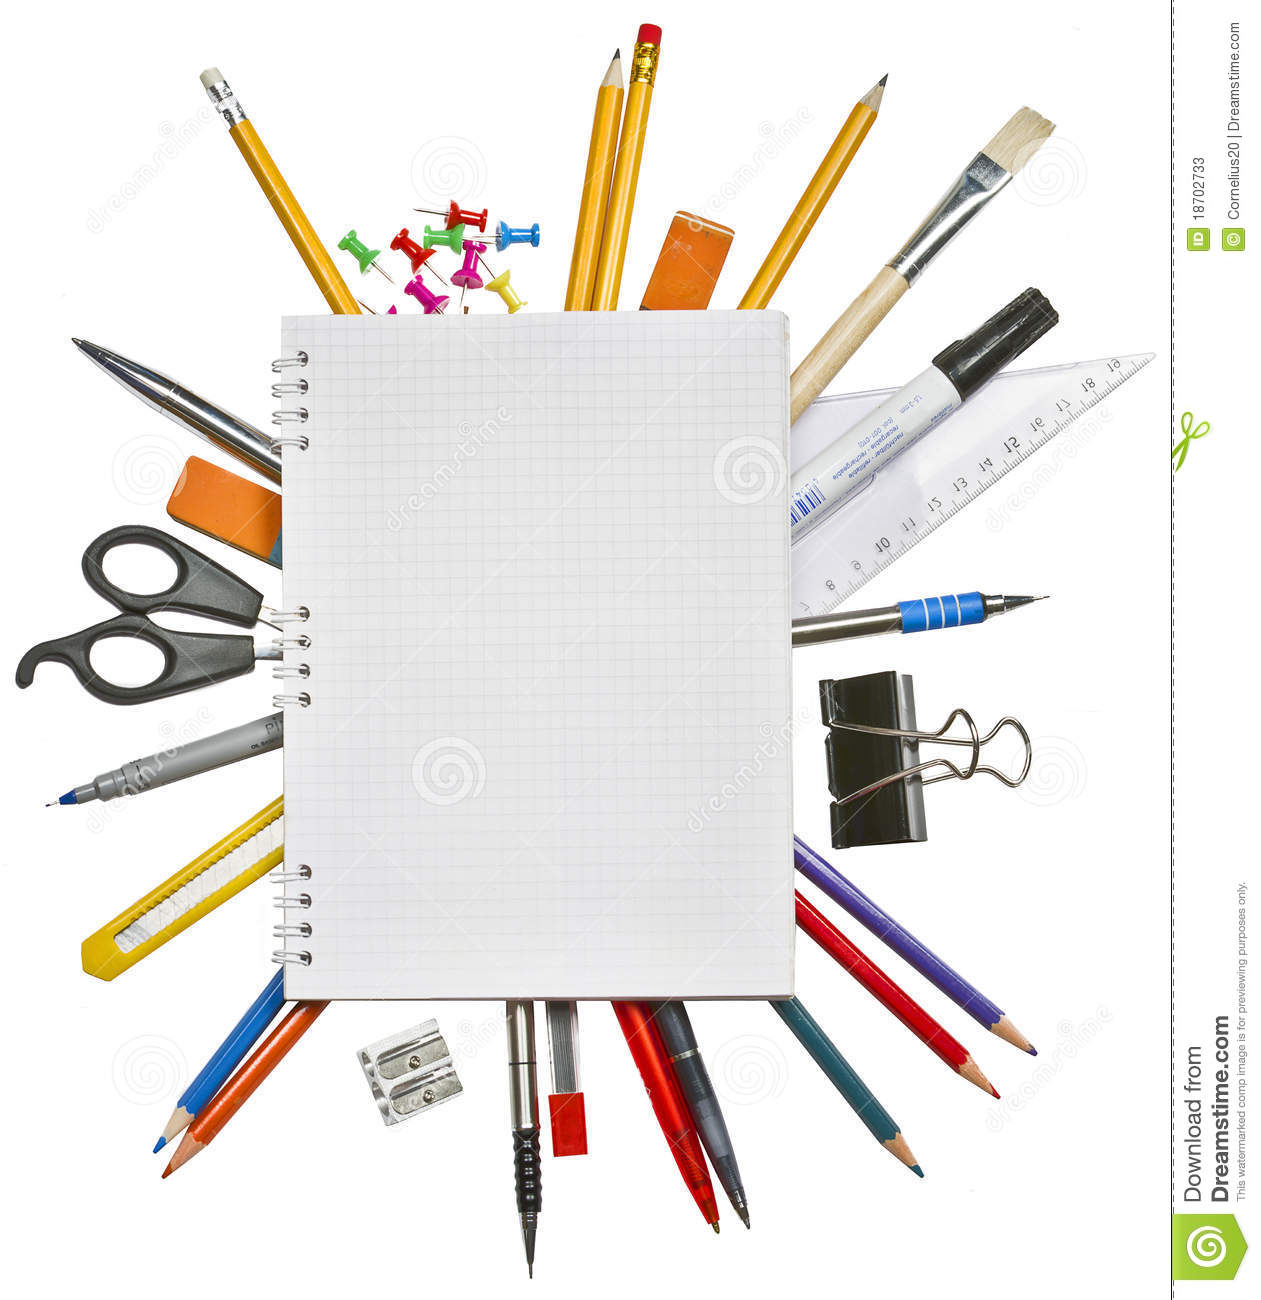 notebook and office supplies stock image image of color open